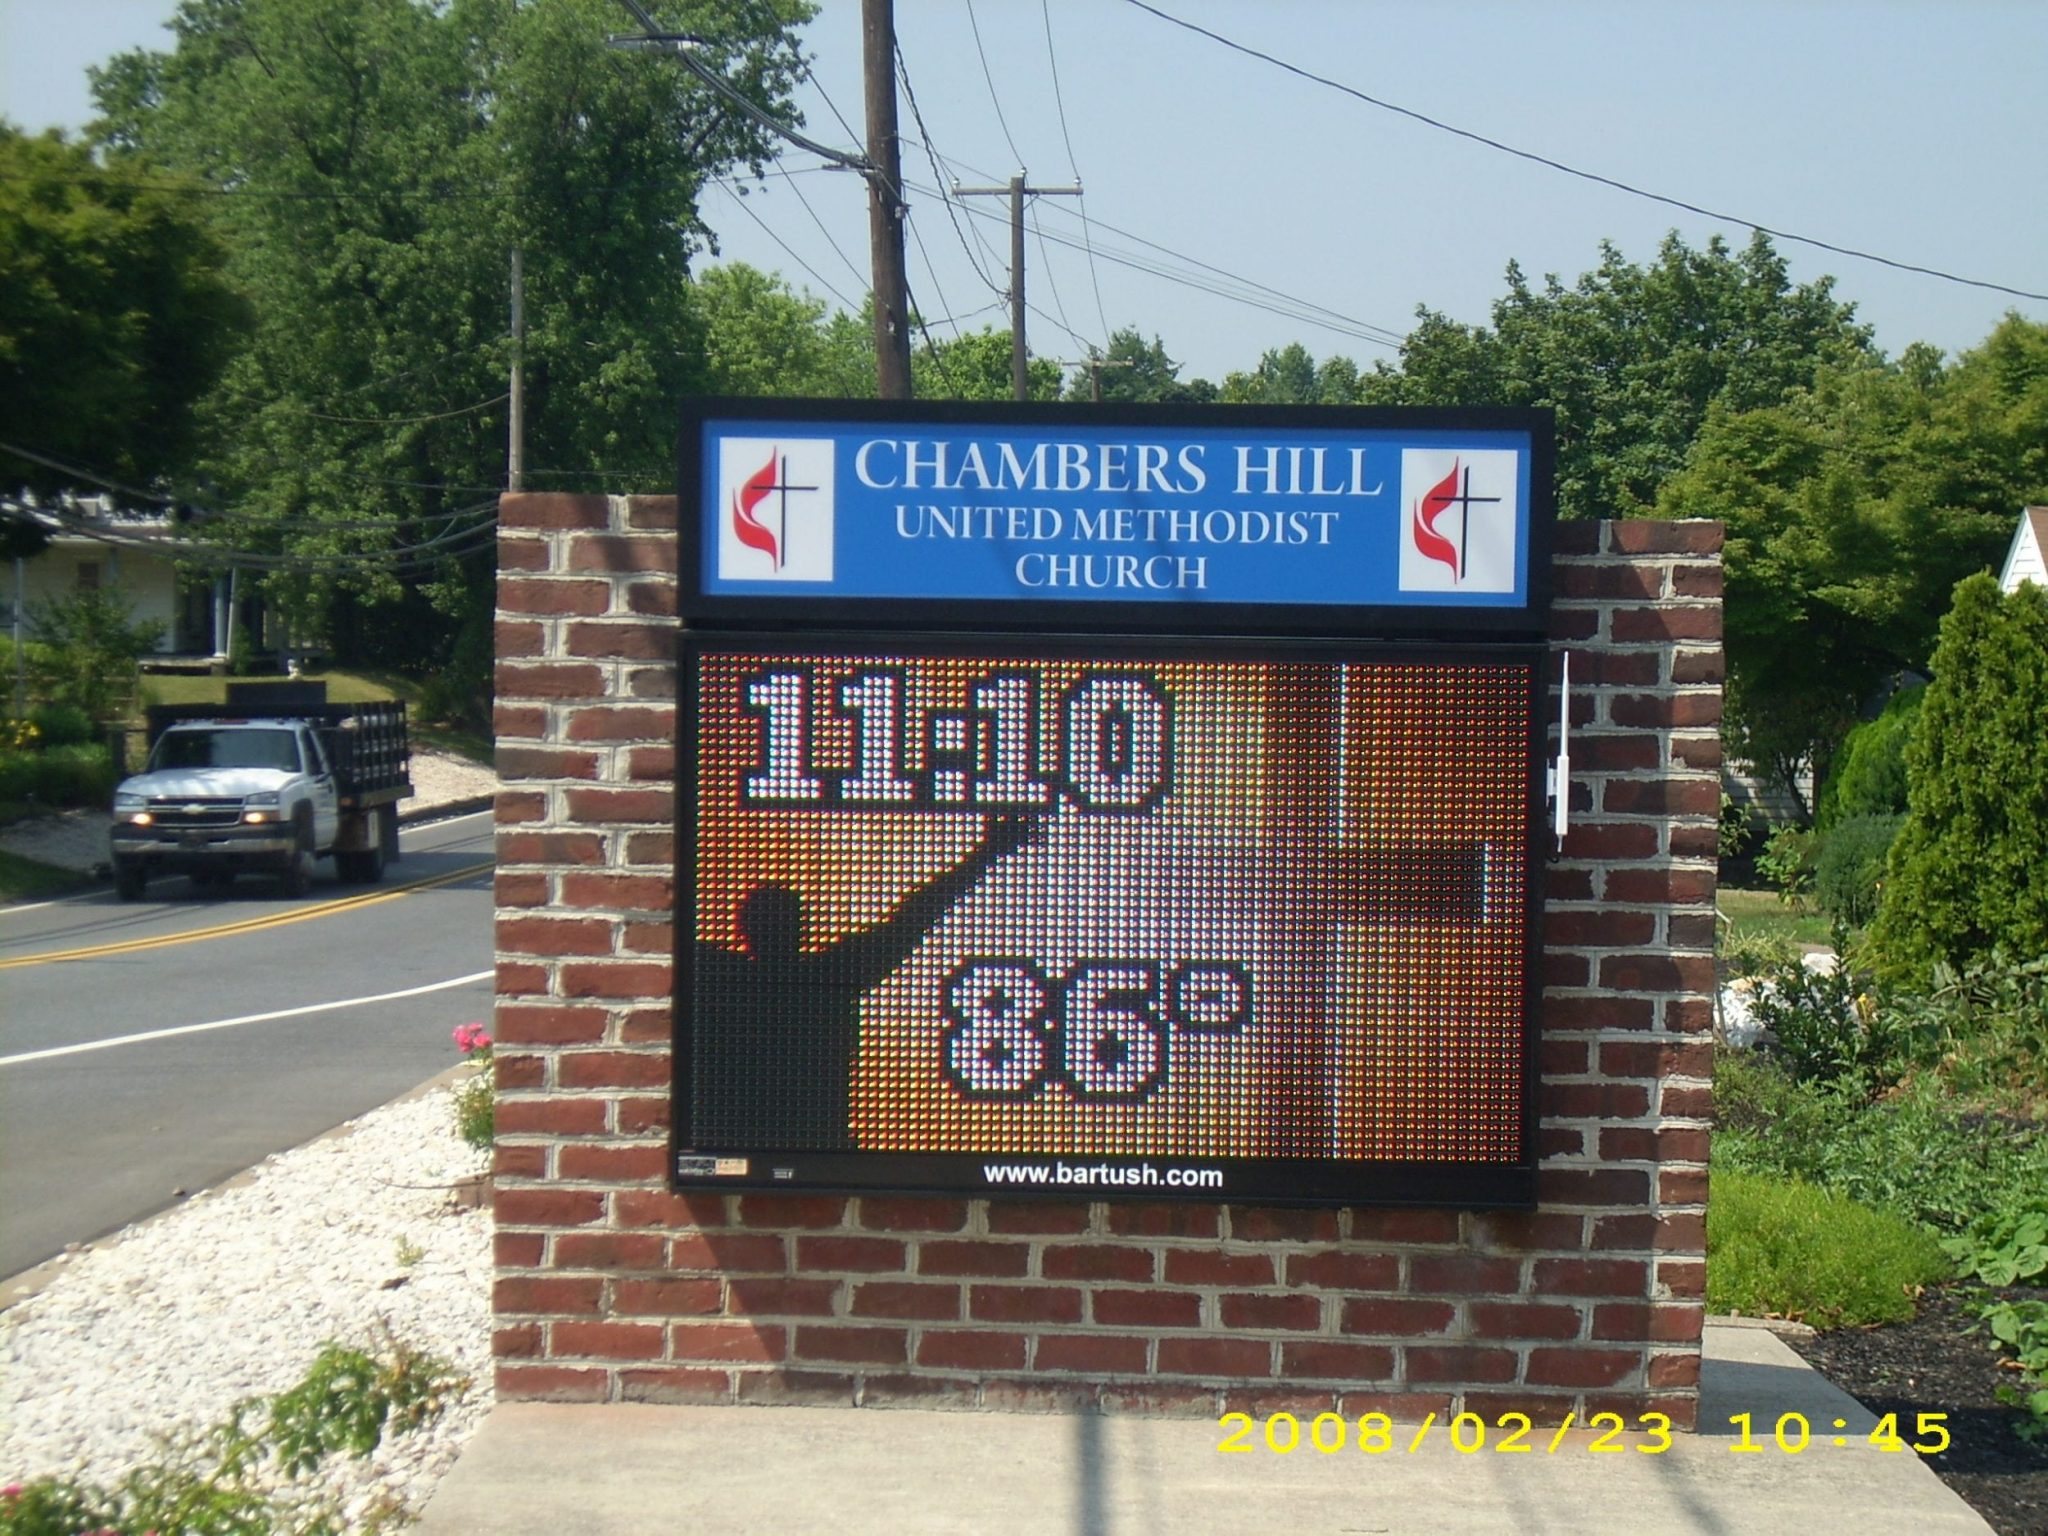 Chambers Hill United Methodist Church led sign